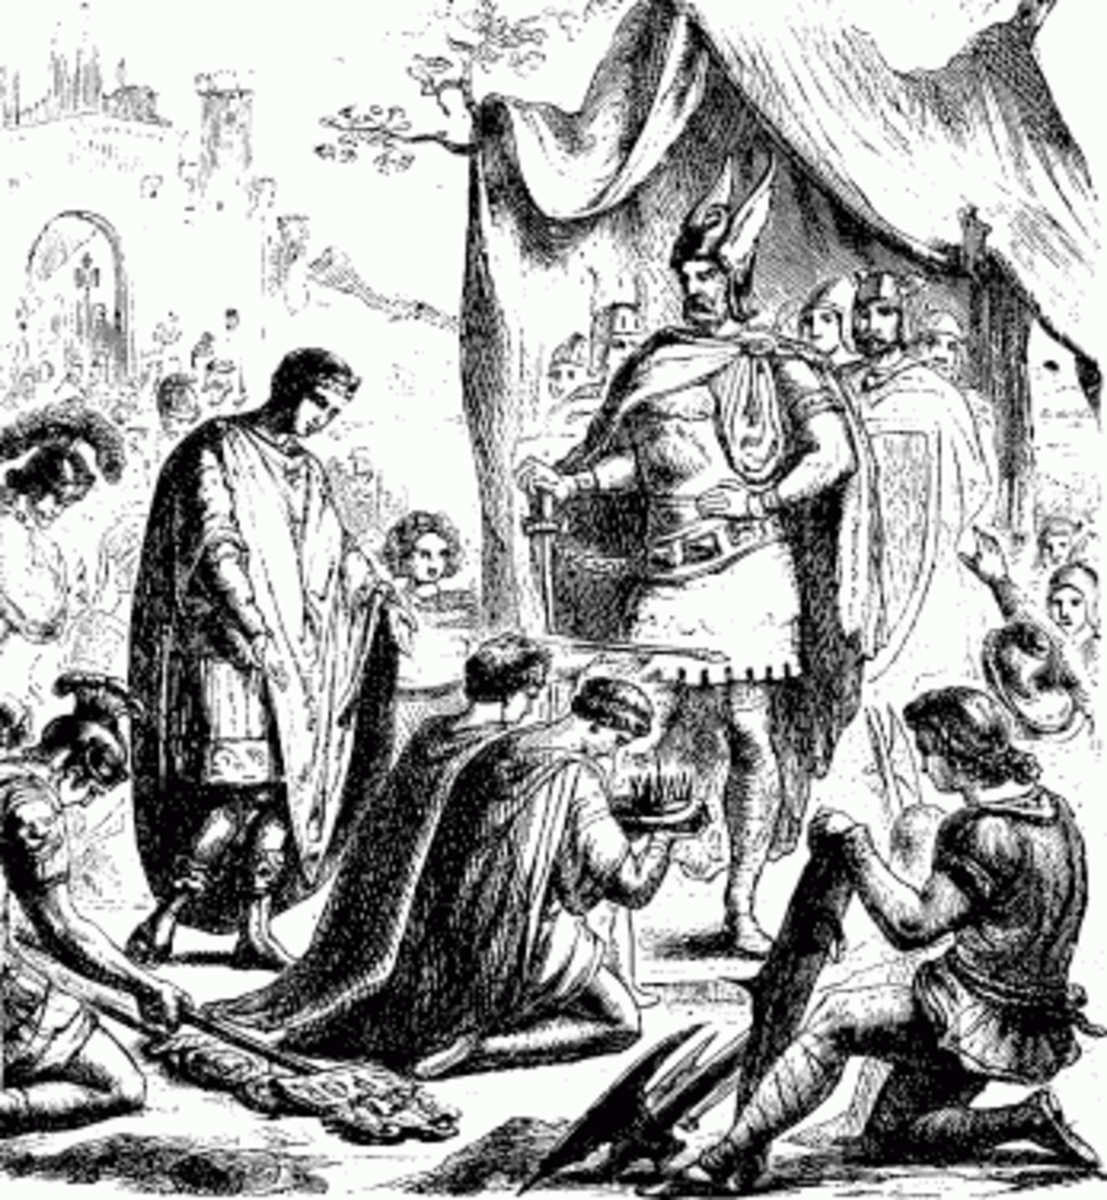 Romulus Augustus, the last Roman Emperor to be based on Rome surrenders his crown to the Germanic chieftain Odoacer in 476 AD.